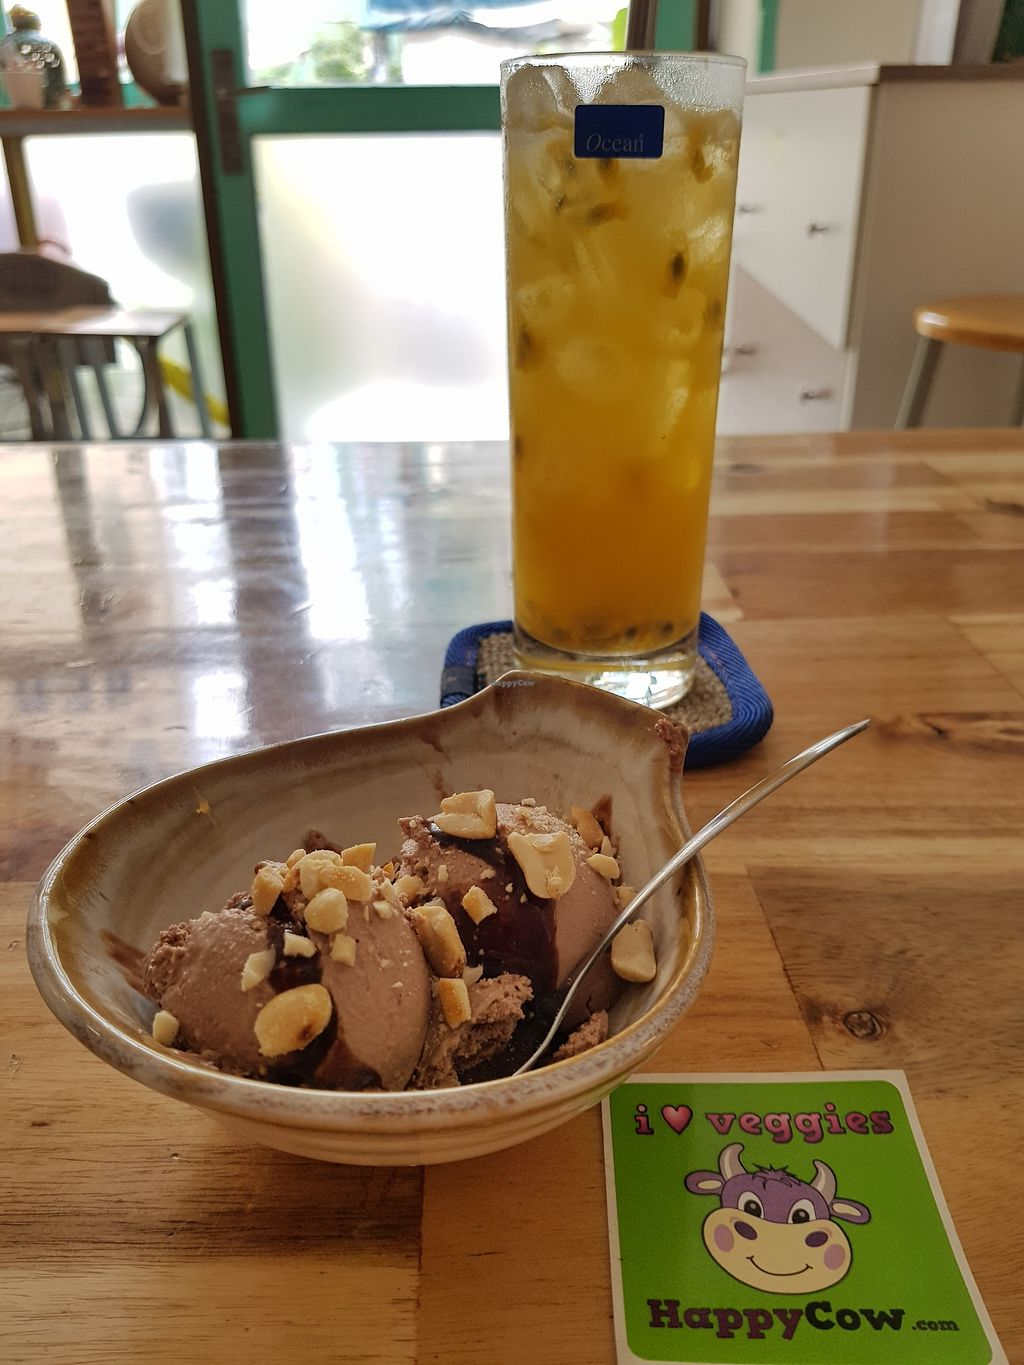 "Photo of Phuc Quang Chay  by <a href=""/members/profile/NatasjaBalm"">NatasjaBalm</a> <br/>Chocolate icecream with passion fruit juice  <br/> March 19, 2018  - <a href='/contact/abuse/image/83479/372765'>Report</a>"